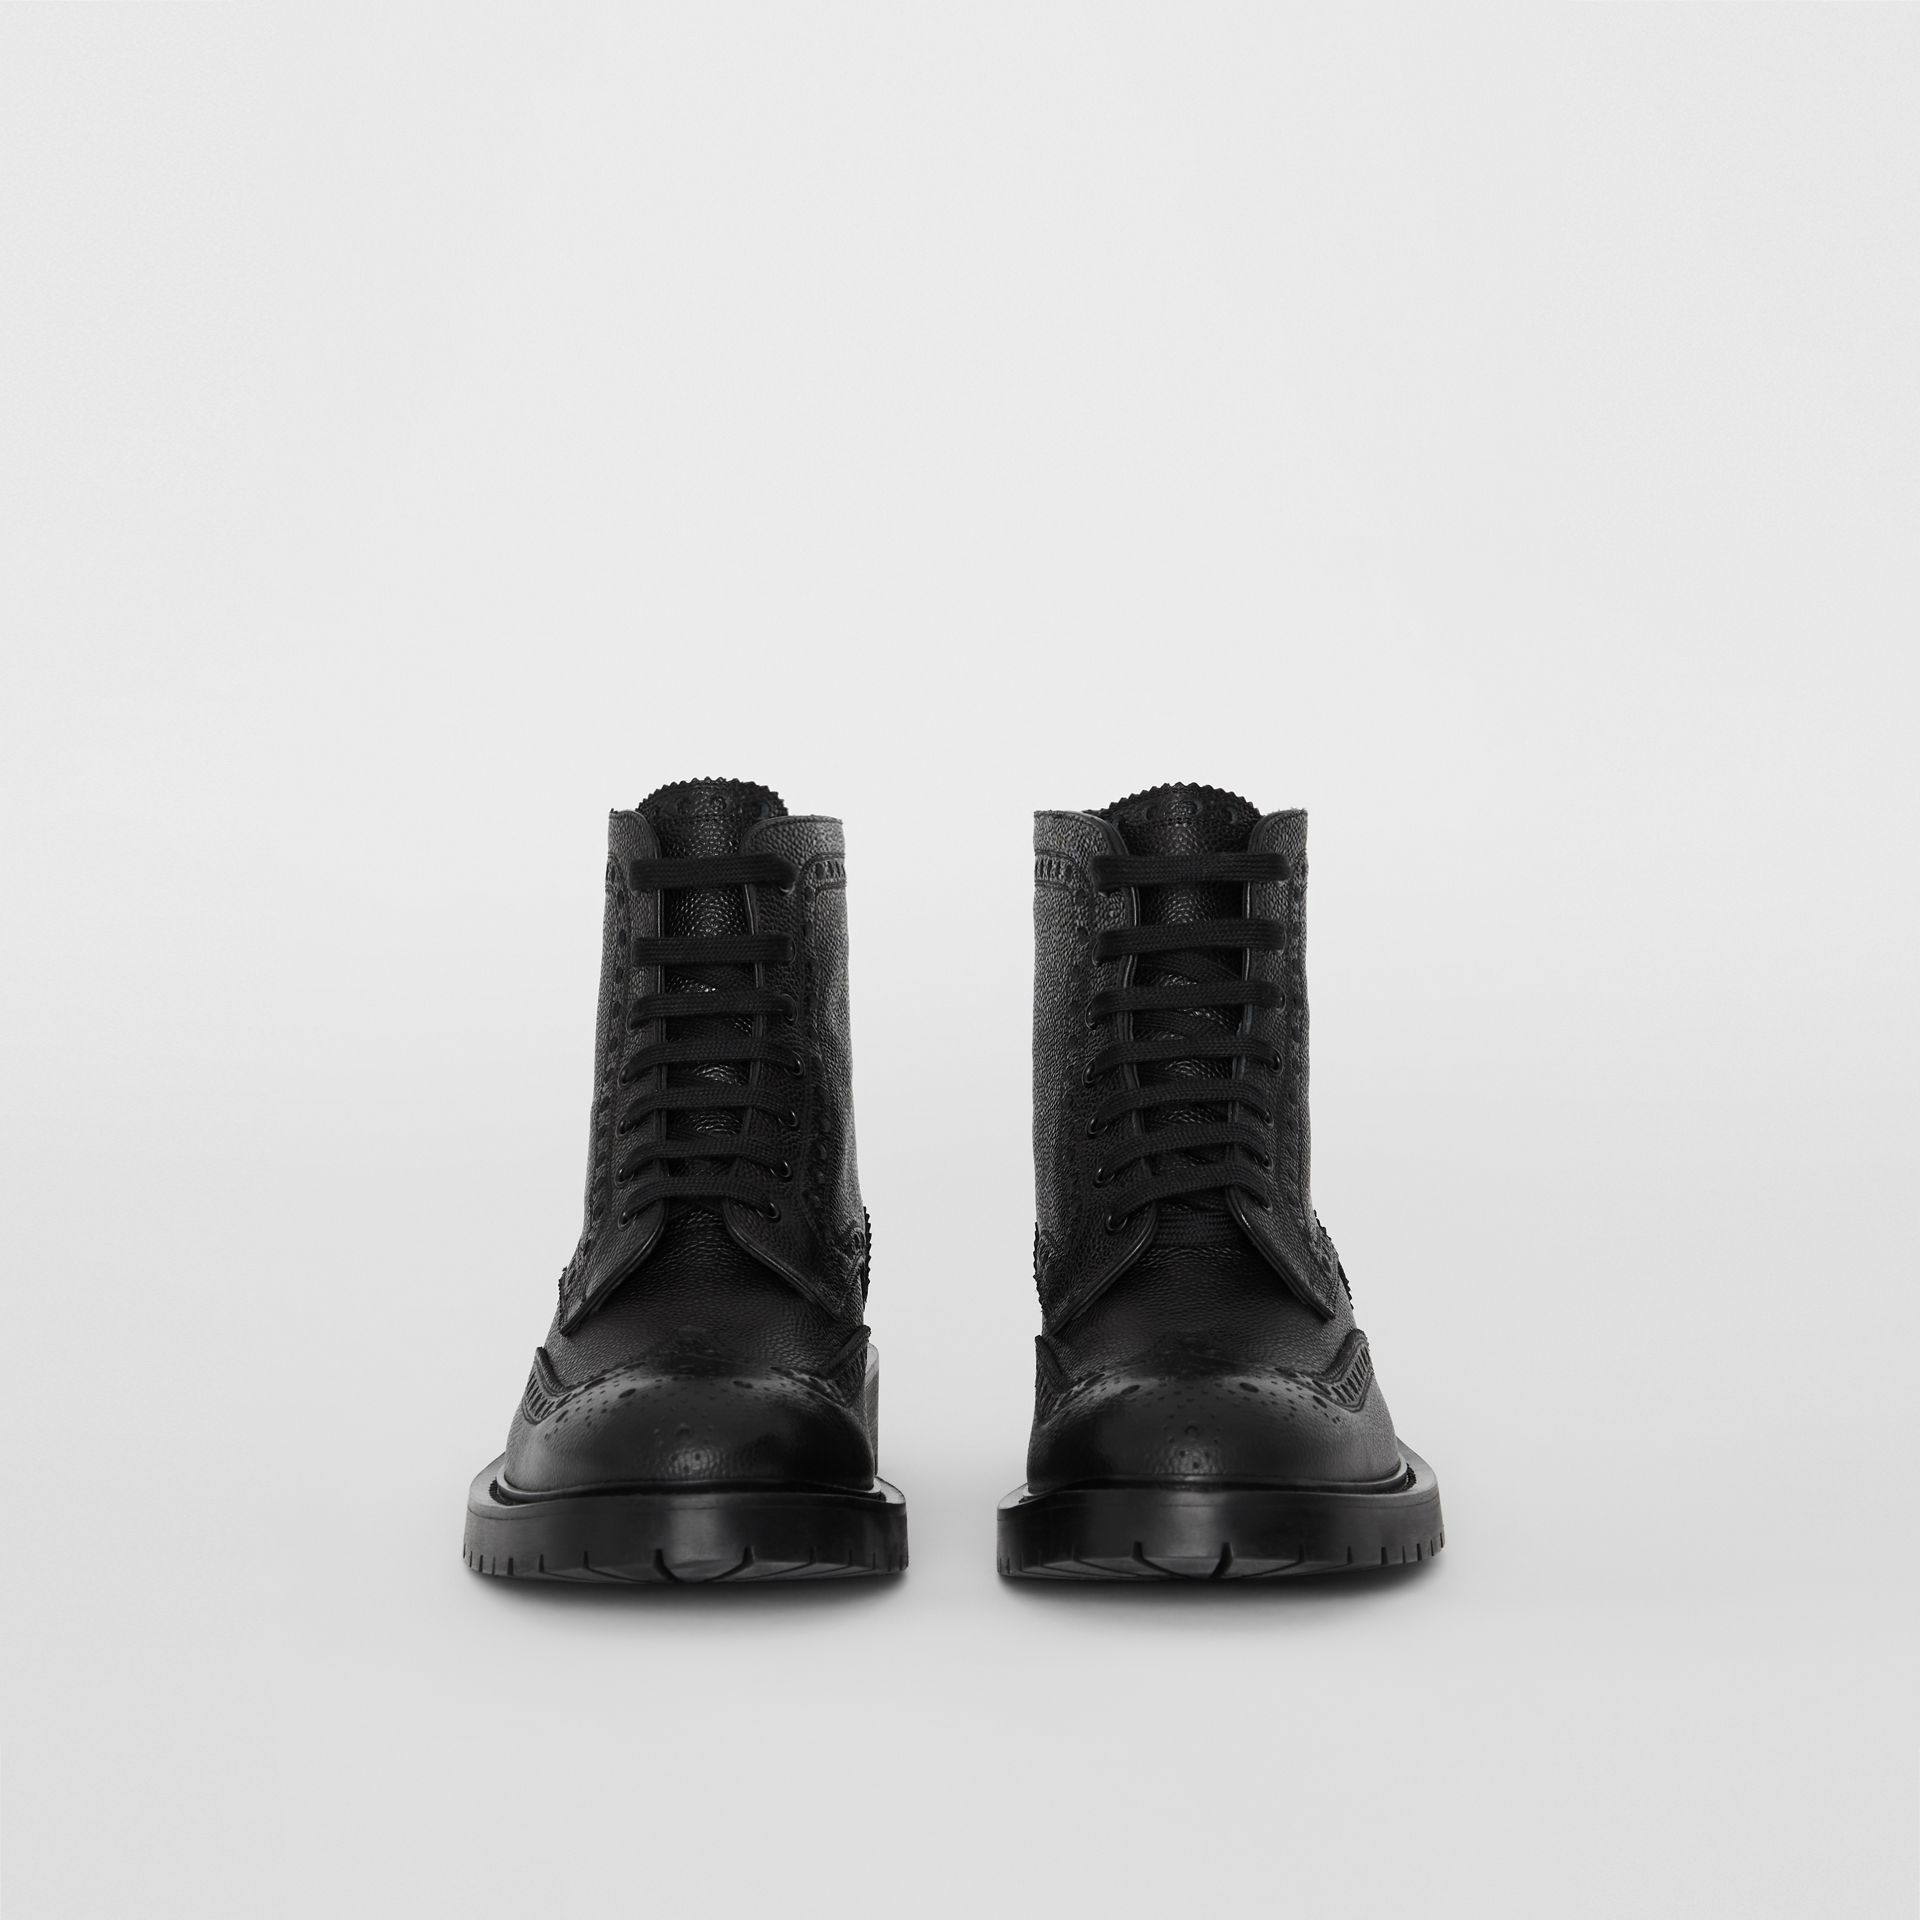 Brogue Detail Grainy Leather Boots in Black - Men | Burberry United States - gallery image 3